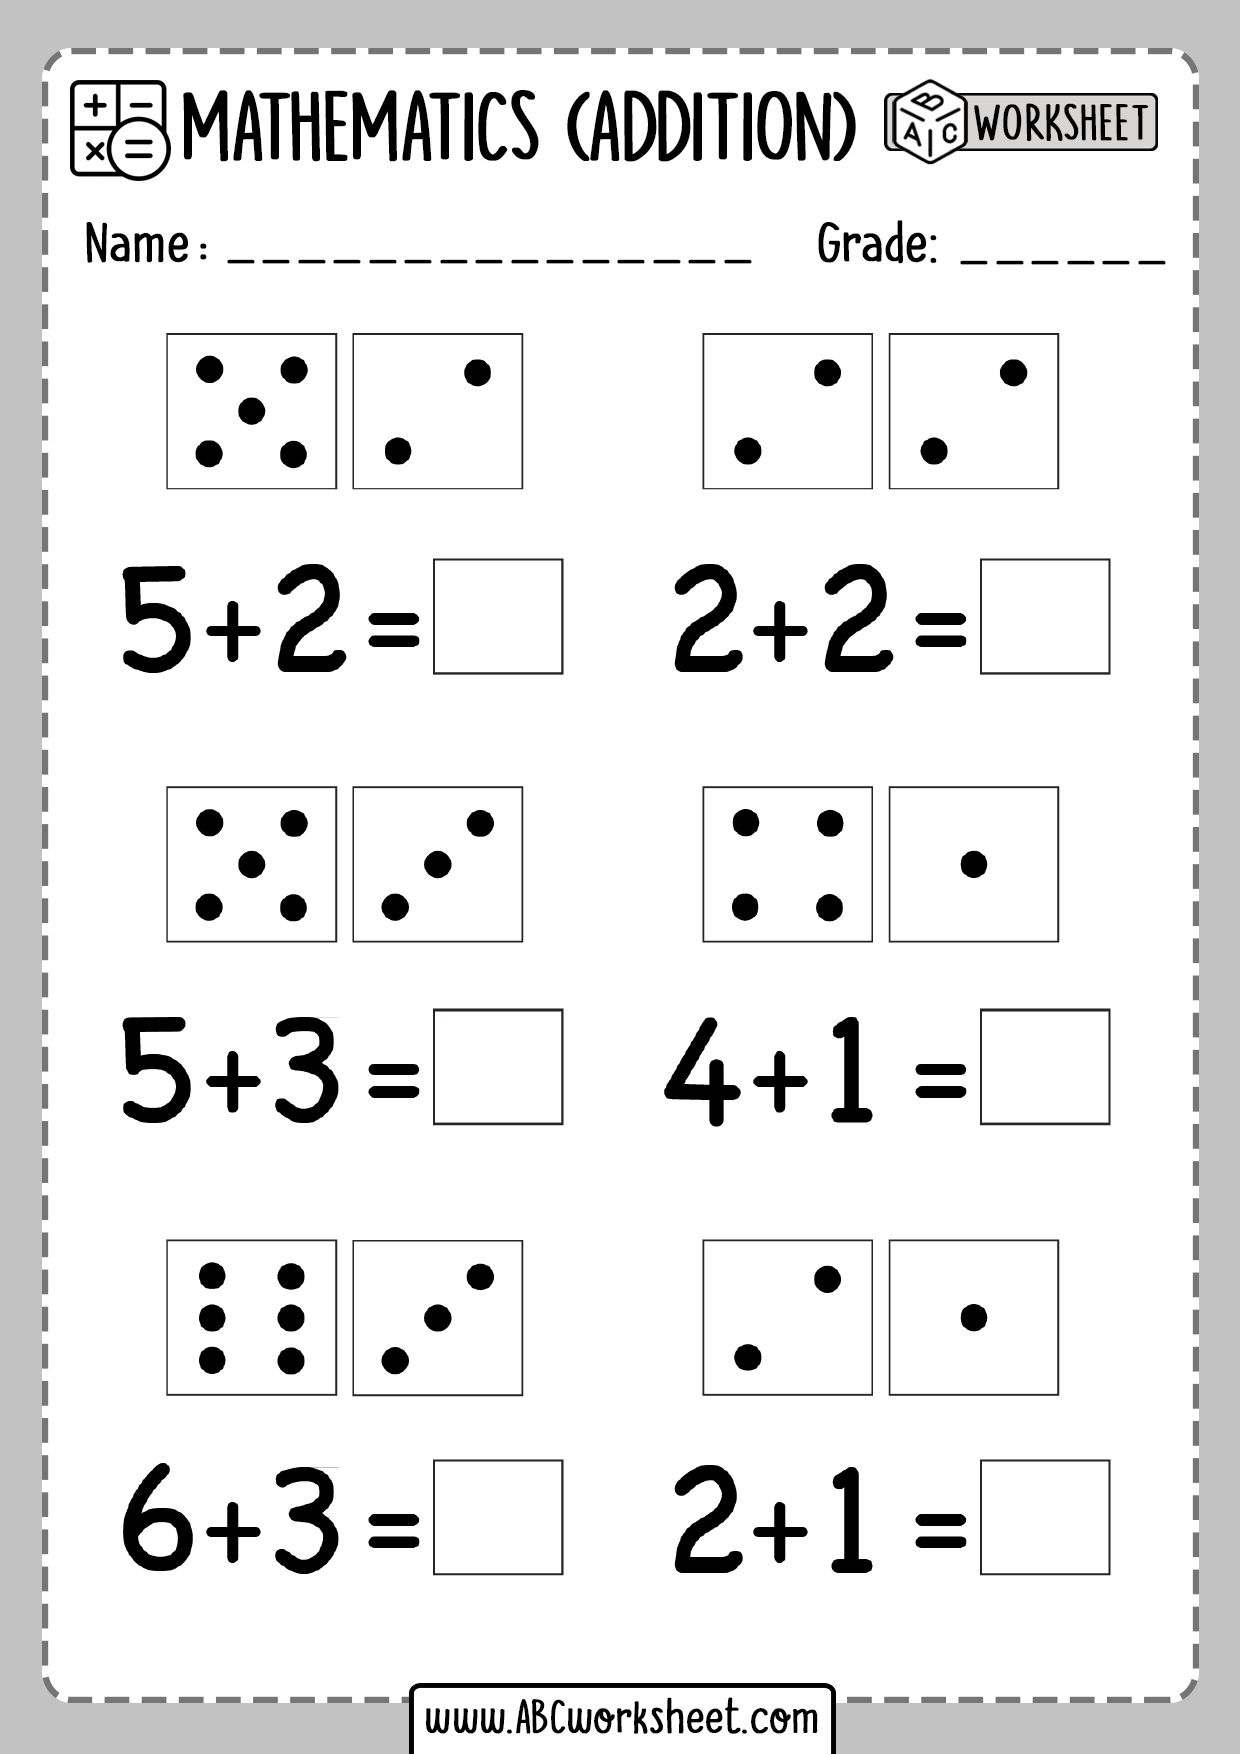 Kindergarten Dice Addition Worksheets In